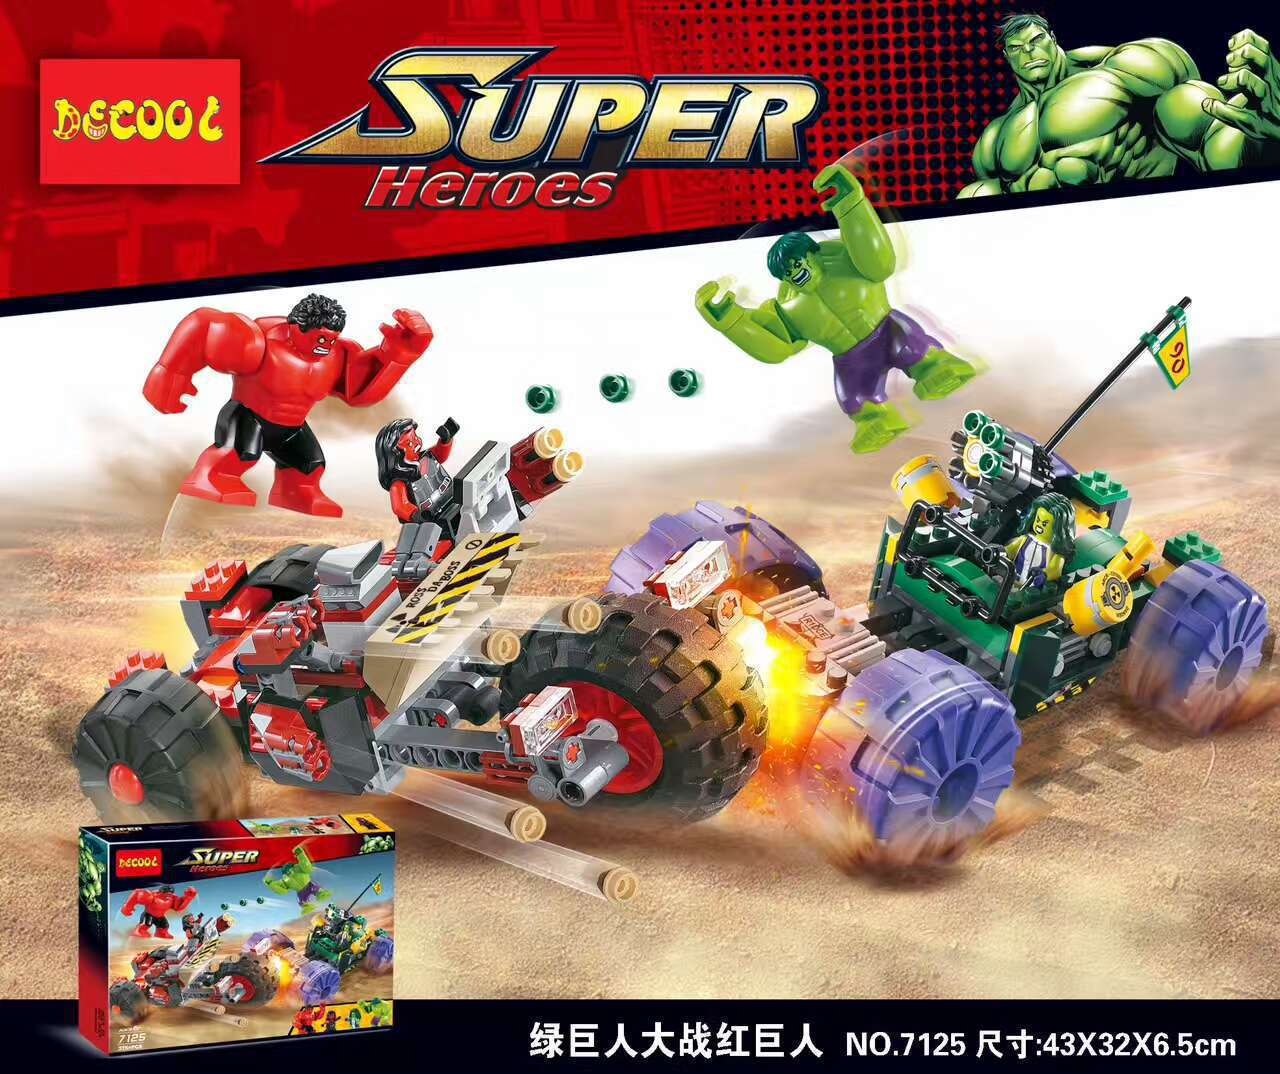 Decool 7125 Super hero hulk vs red giant 378PCS 3D DIY Figures boy toys for children educational building blocks Birthday gifts image